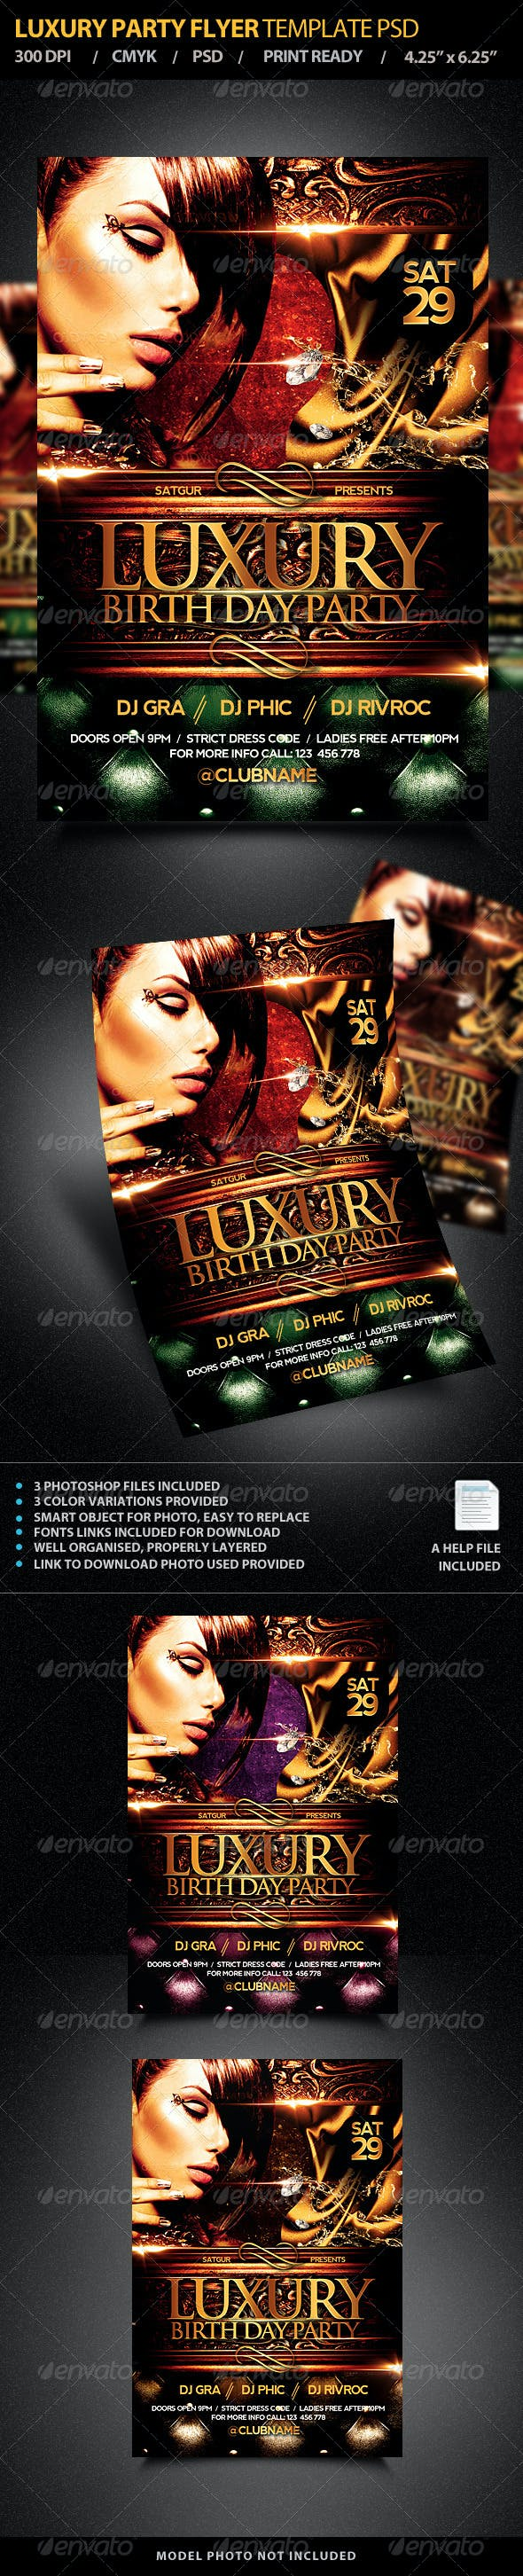 Luxury Party Flyer Template Psd By Satgur Graphicriver